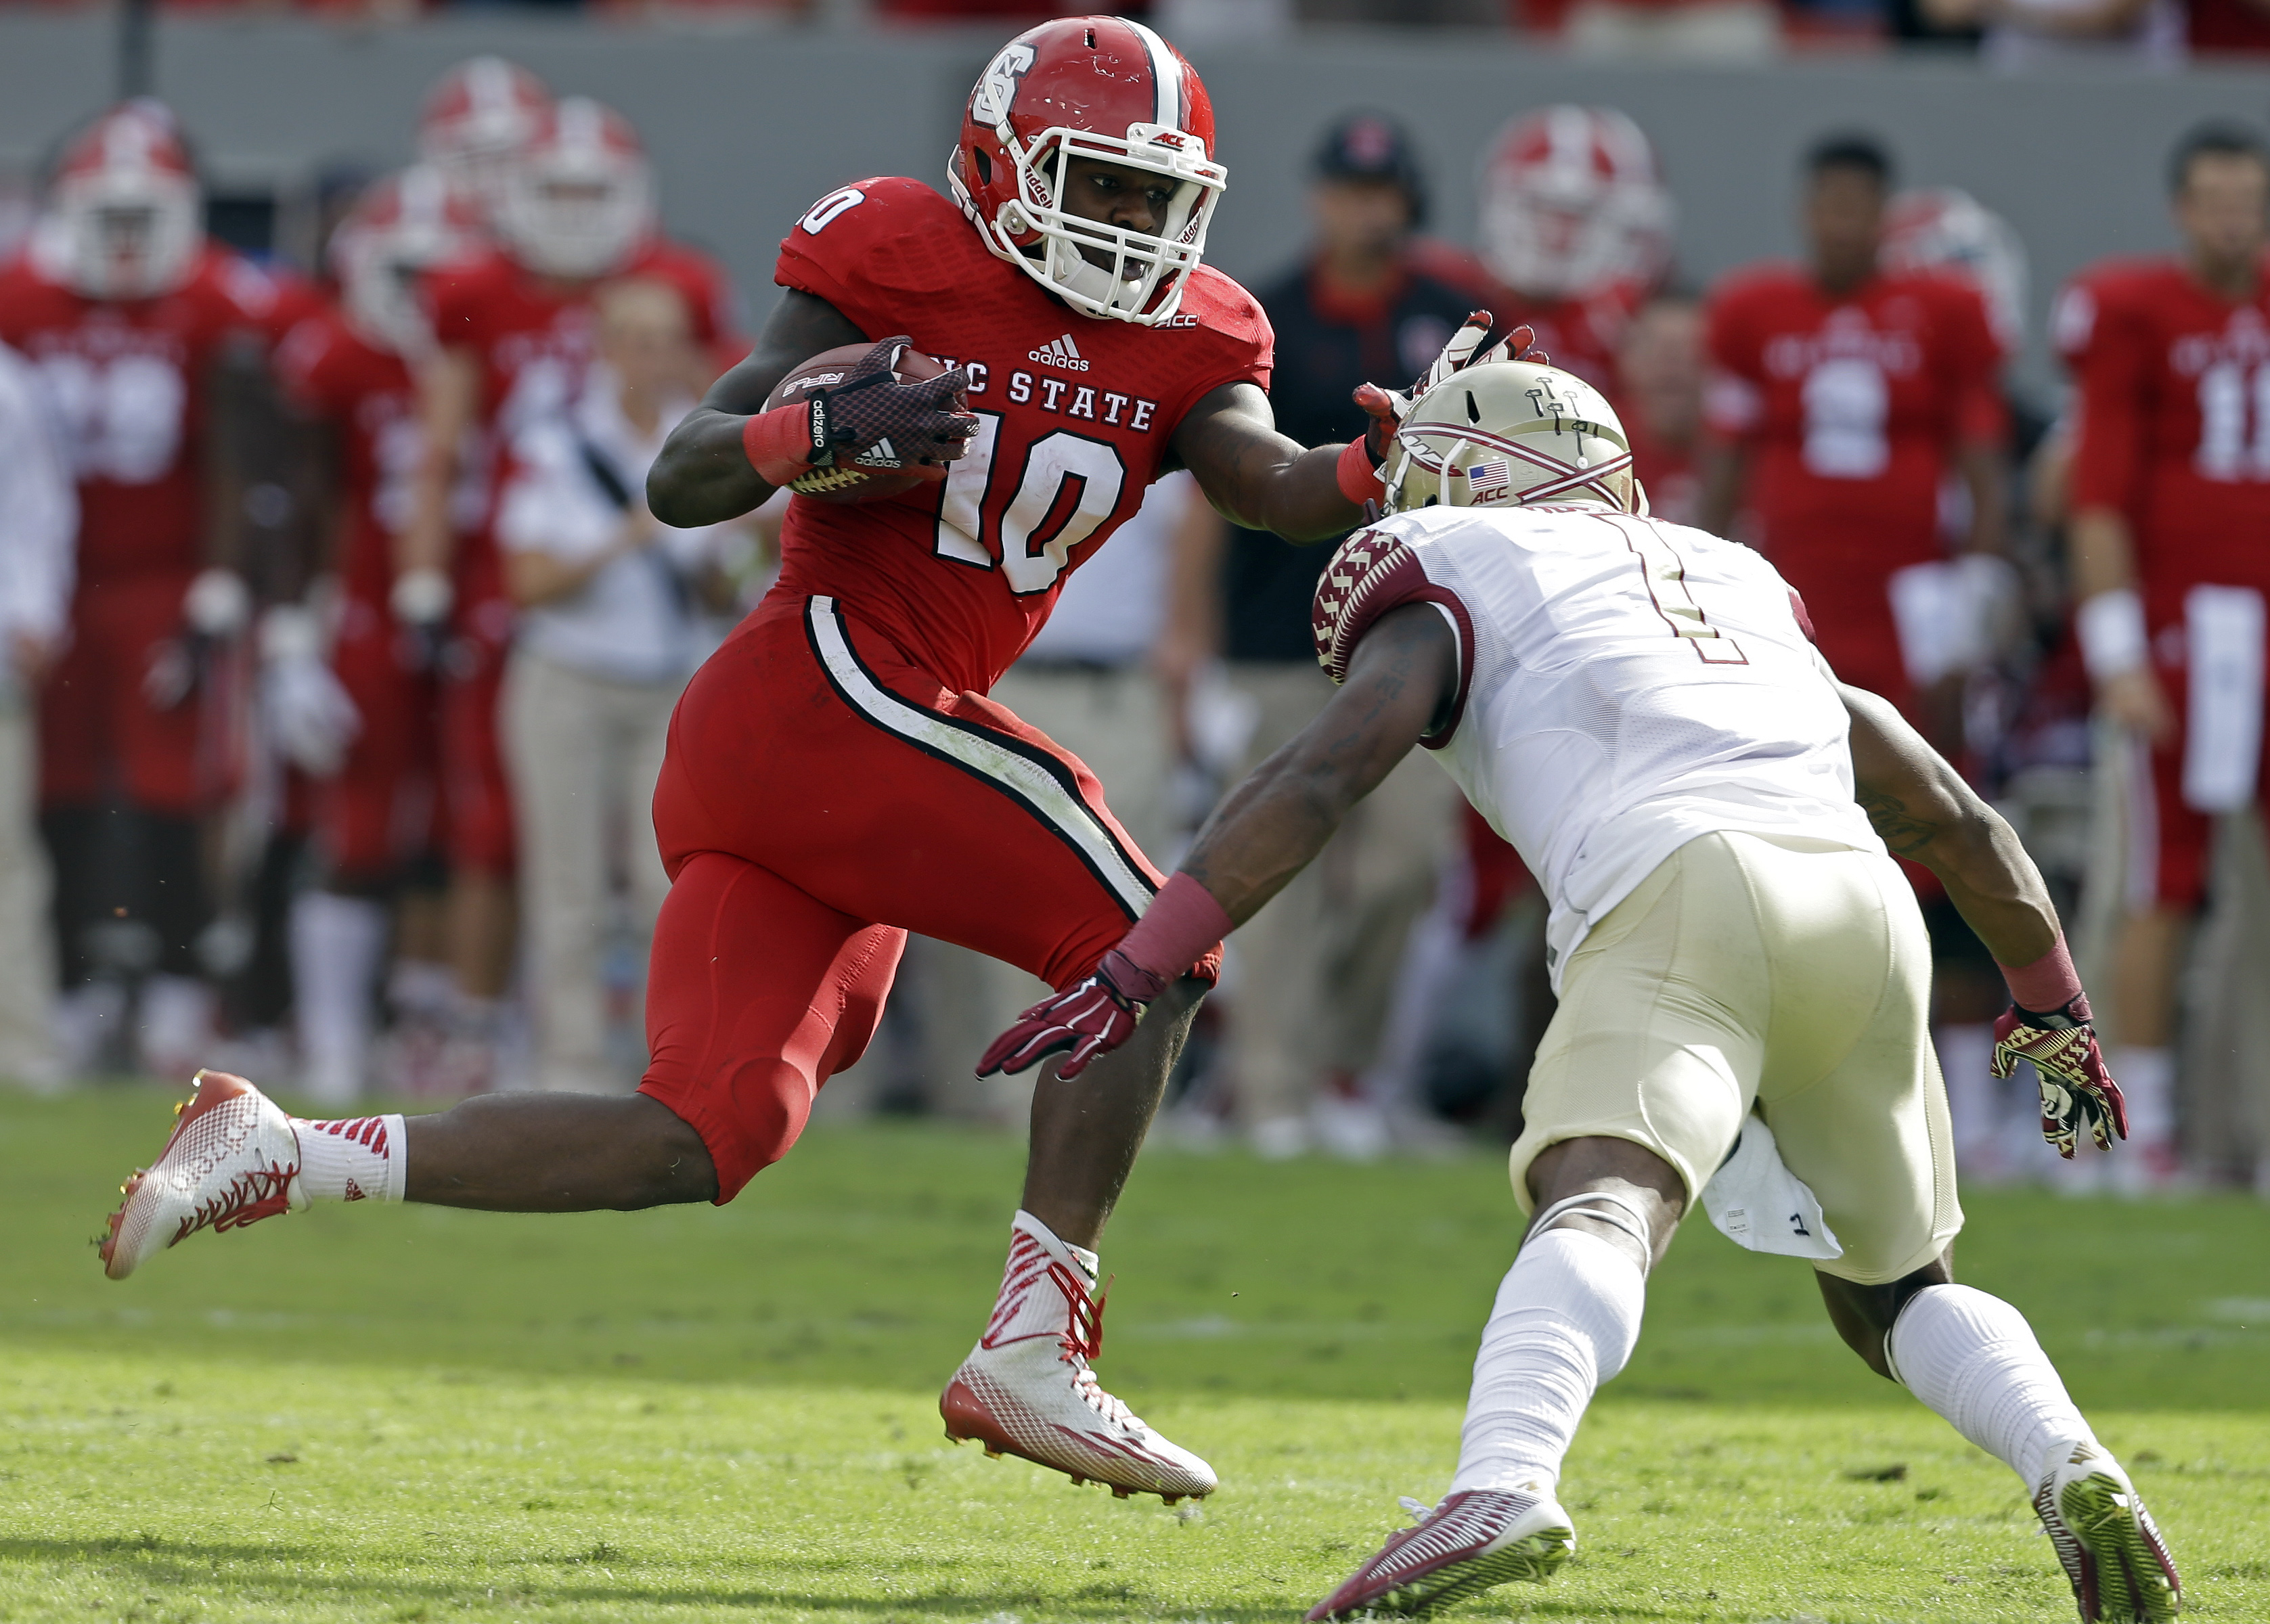 FILE - In this Sept. 27, 2014, file photo, Florida State's Tyler Hunter (1) looks to tackle North Carolina State's Shadrach Thornton (10) during the first half of an NCAA college football game in Raleigh, N.C. Thornton is eligible to return Saturday again